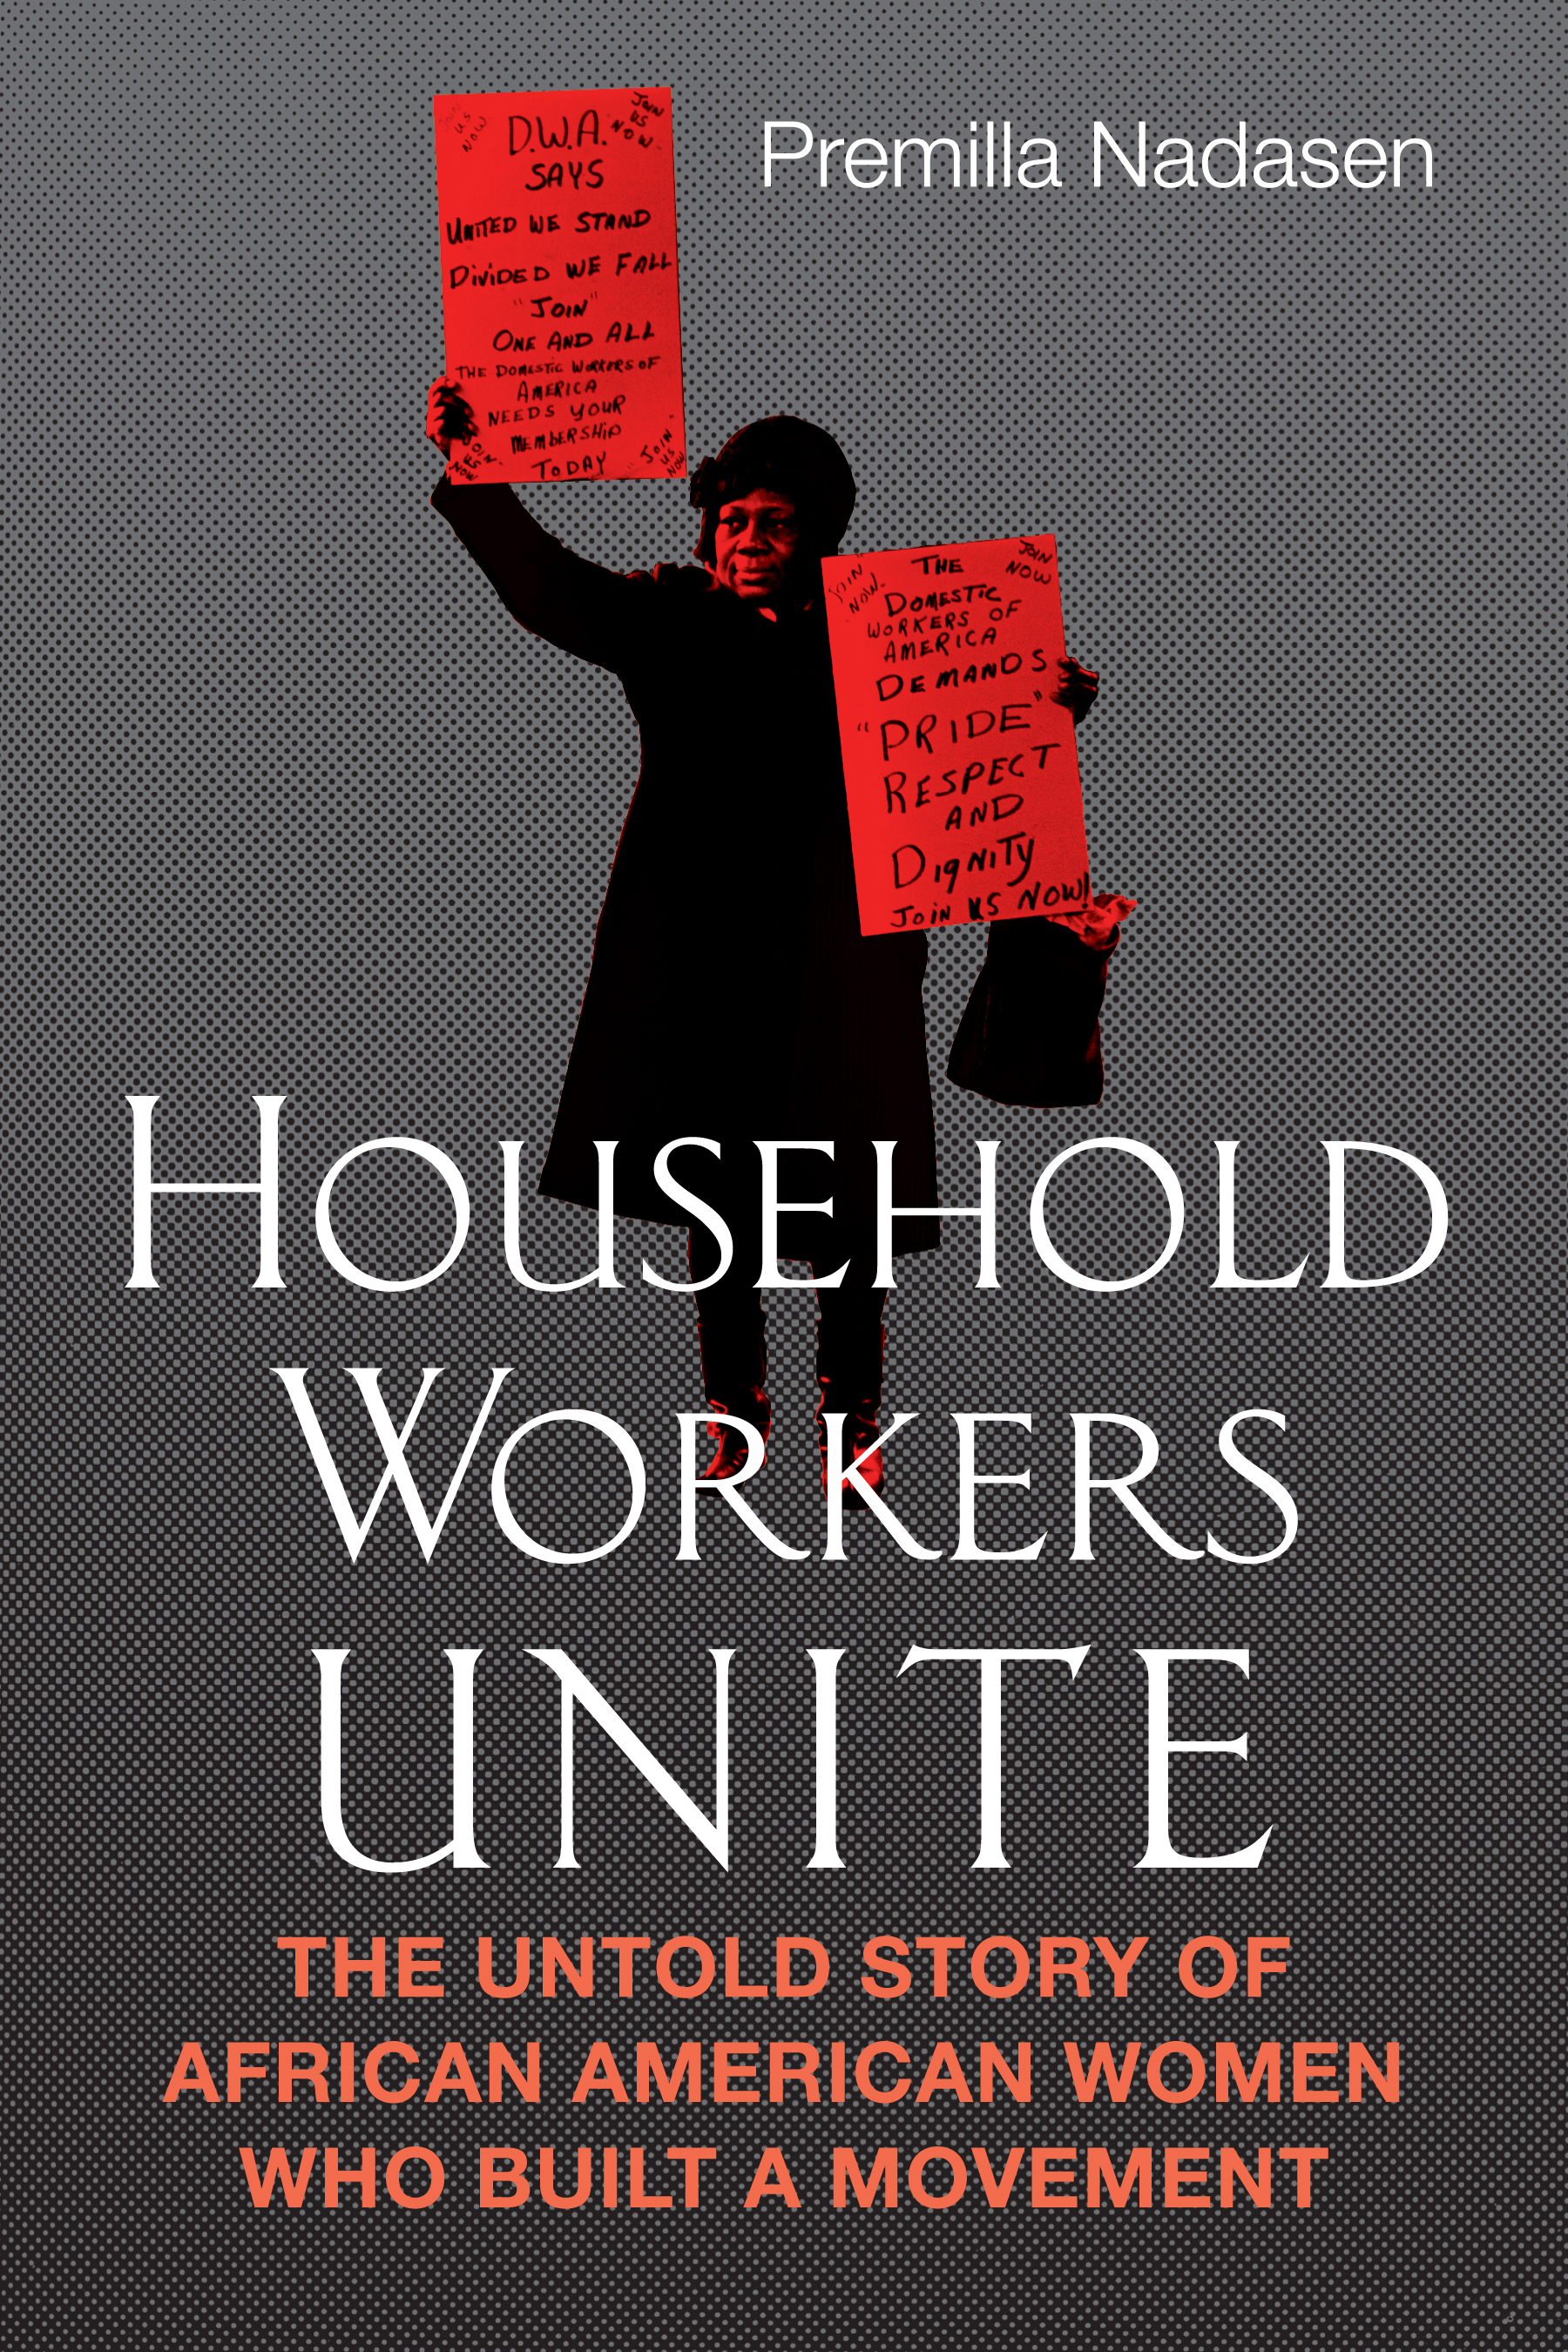 Nadasen-HouseholdWorkersUnite